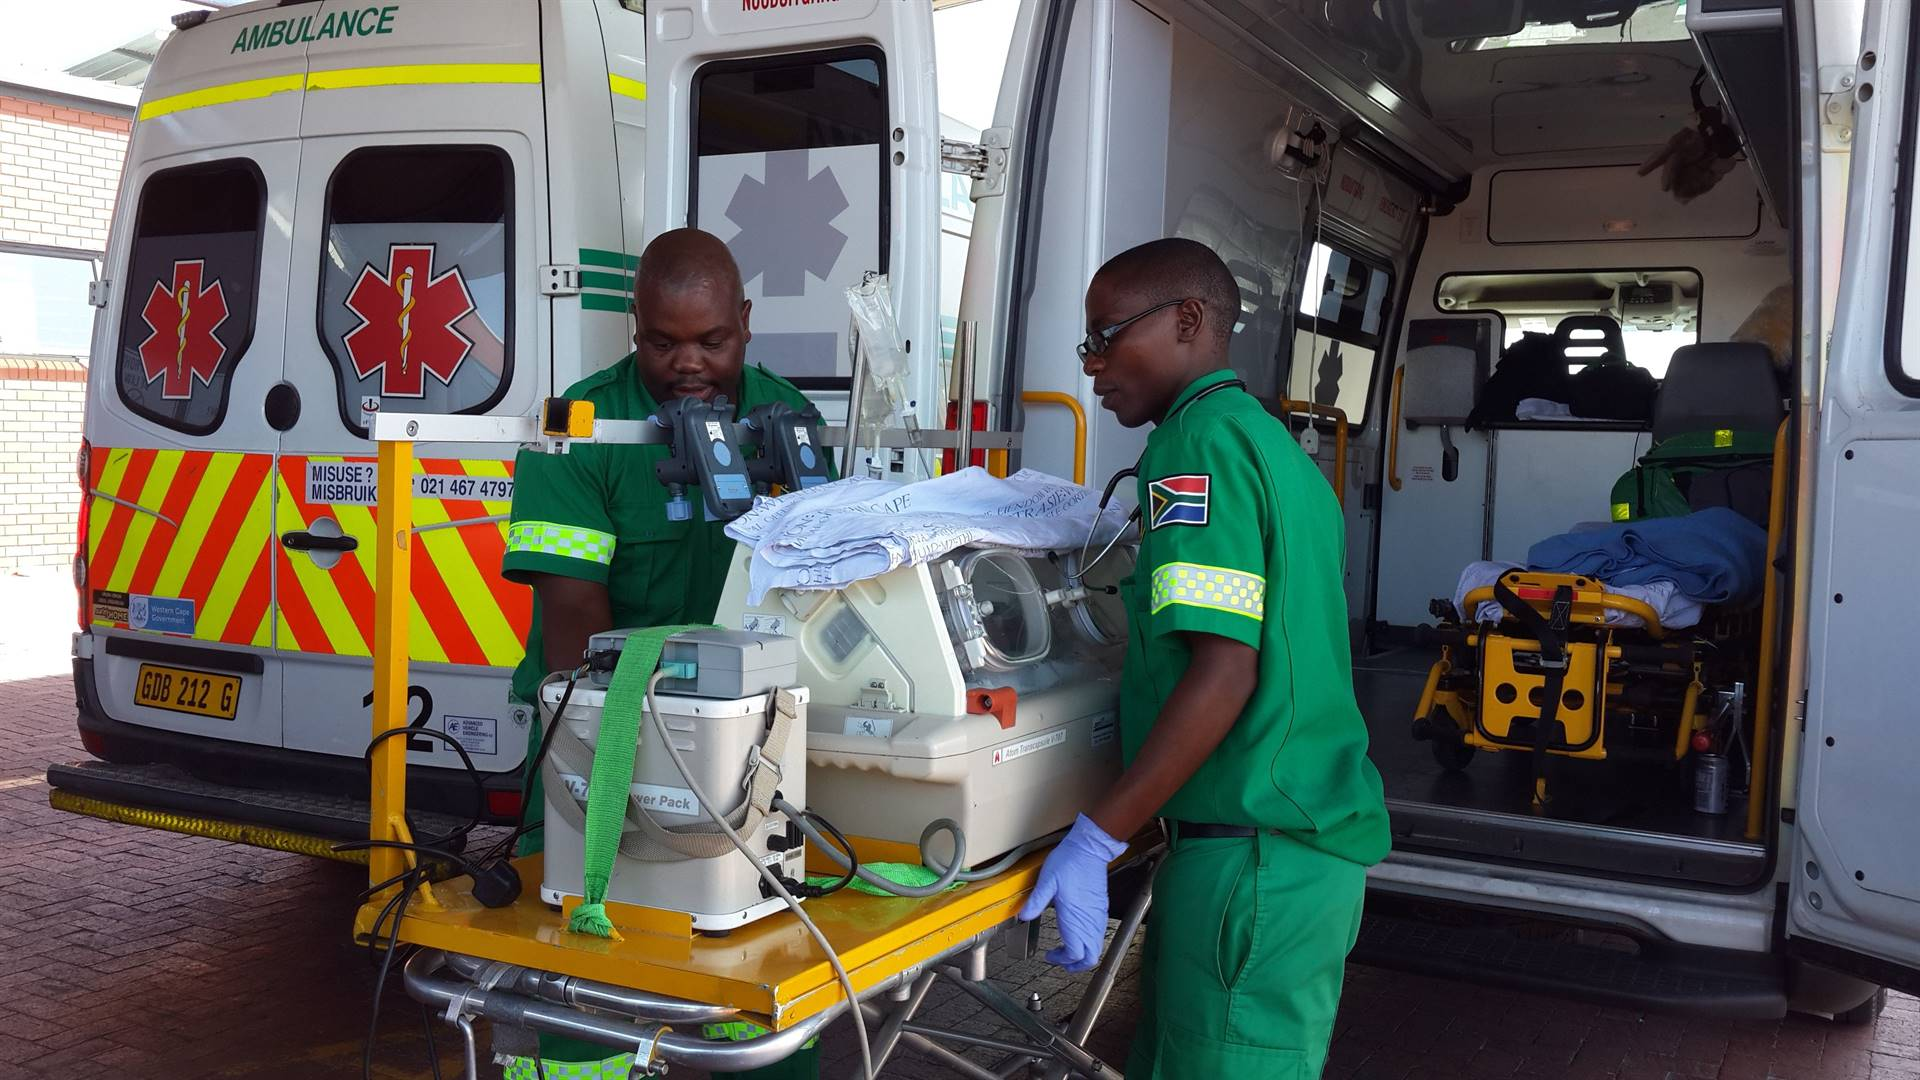 In South Africa responding to medical emergencies can mean risking your life, possible assault and losing some of your belongings. Picture: EMS